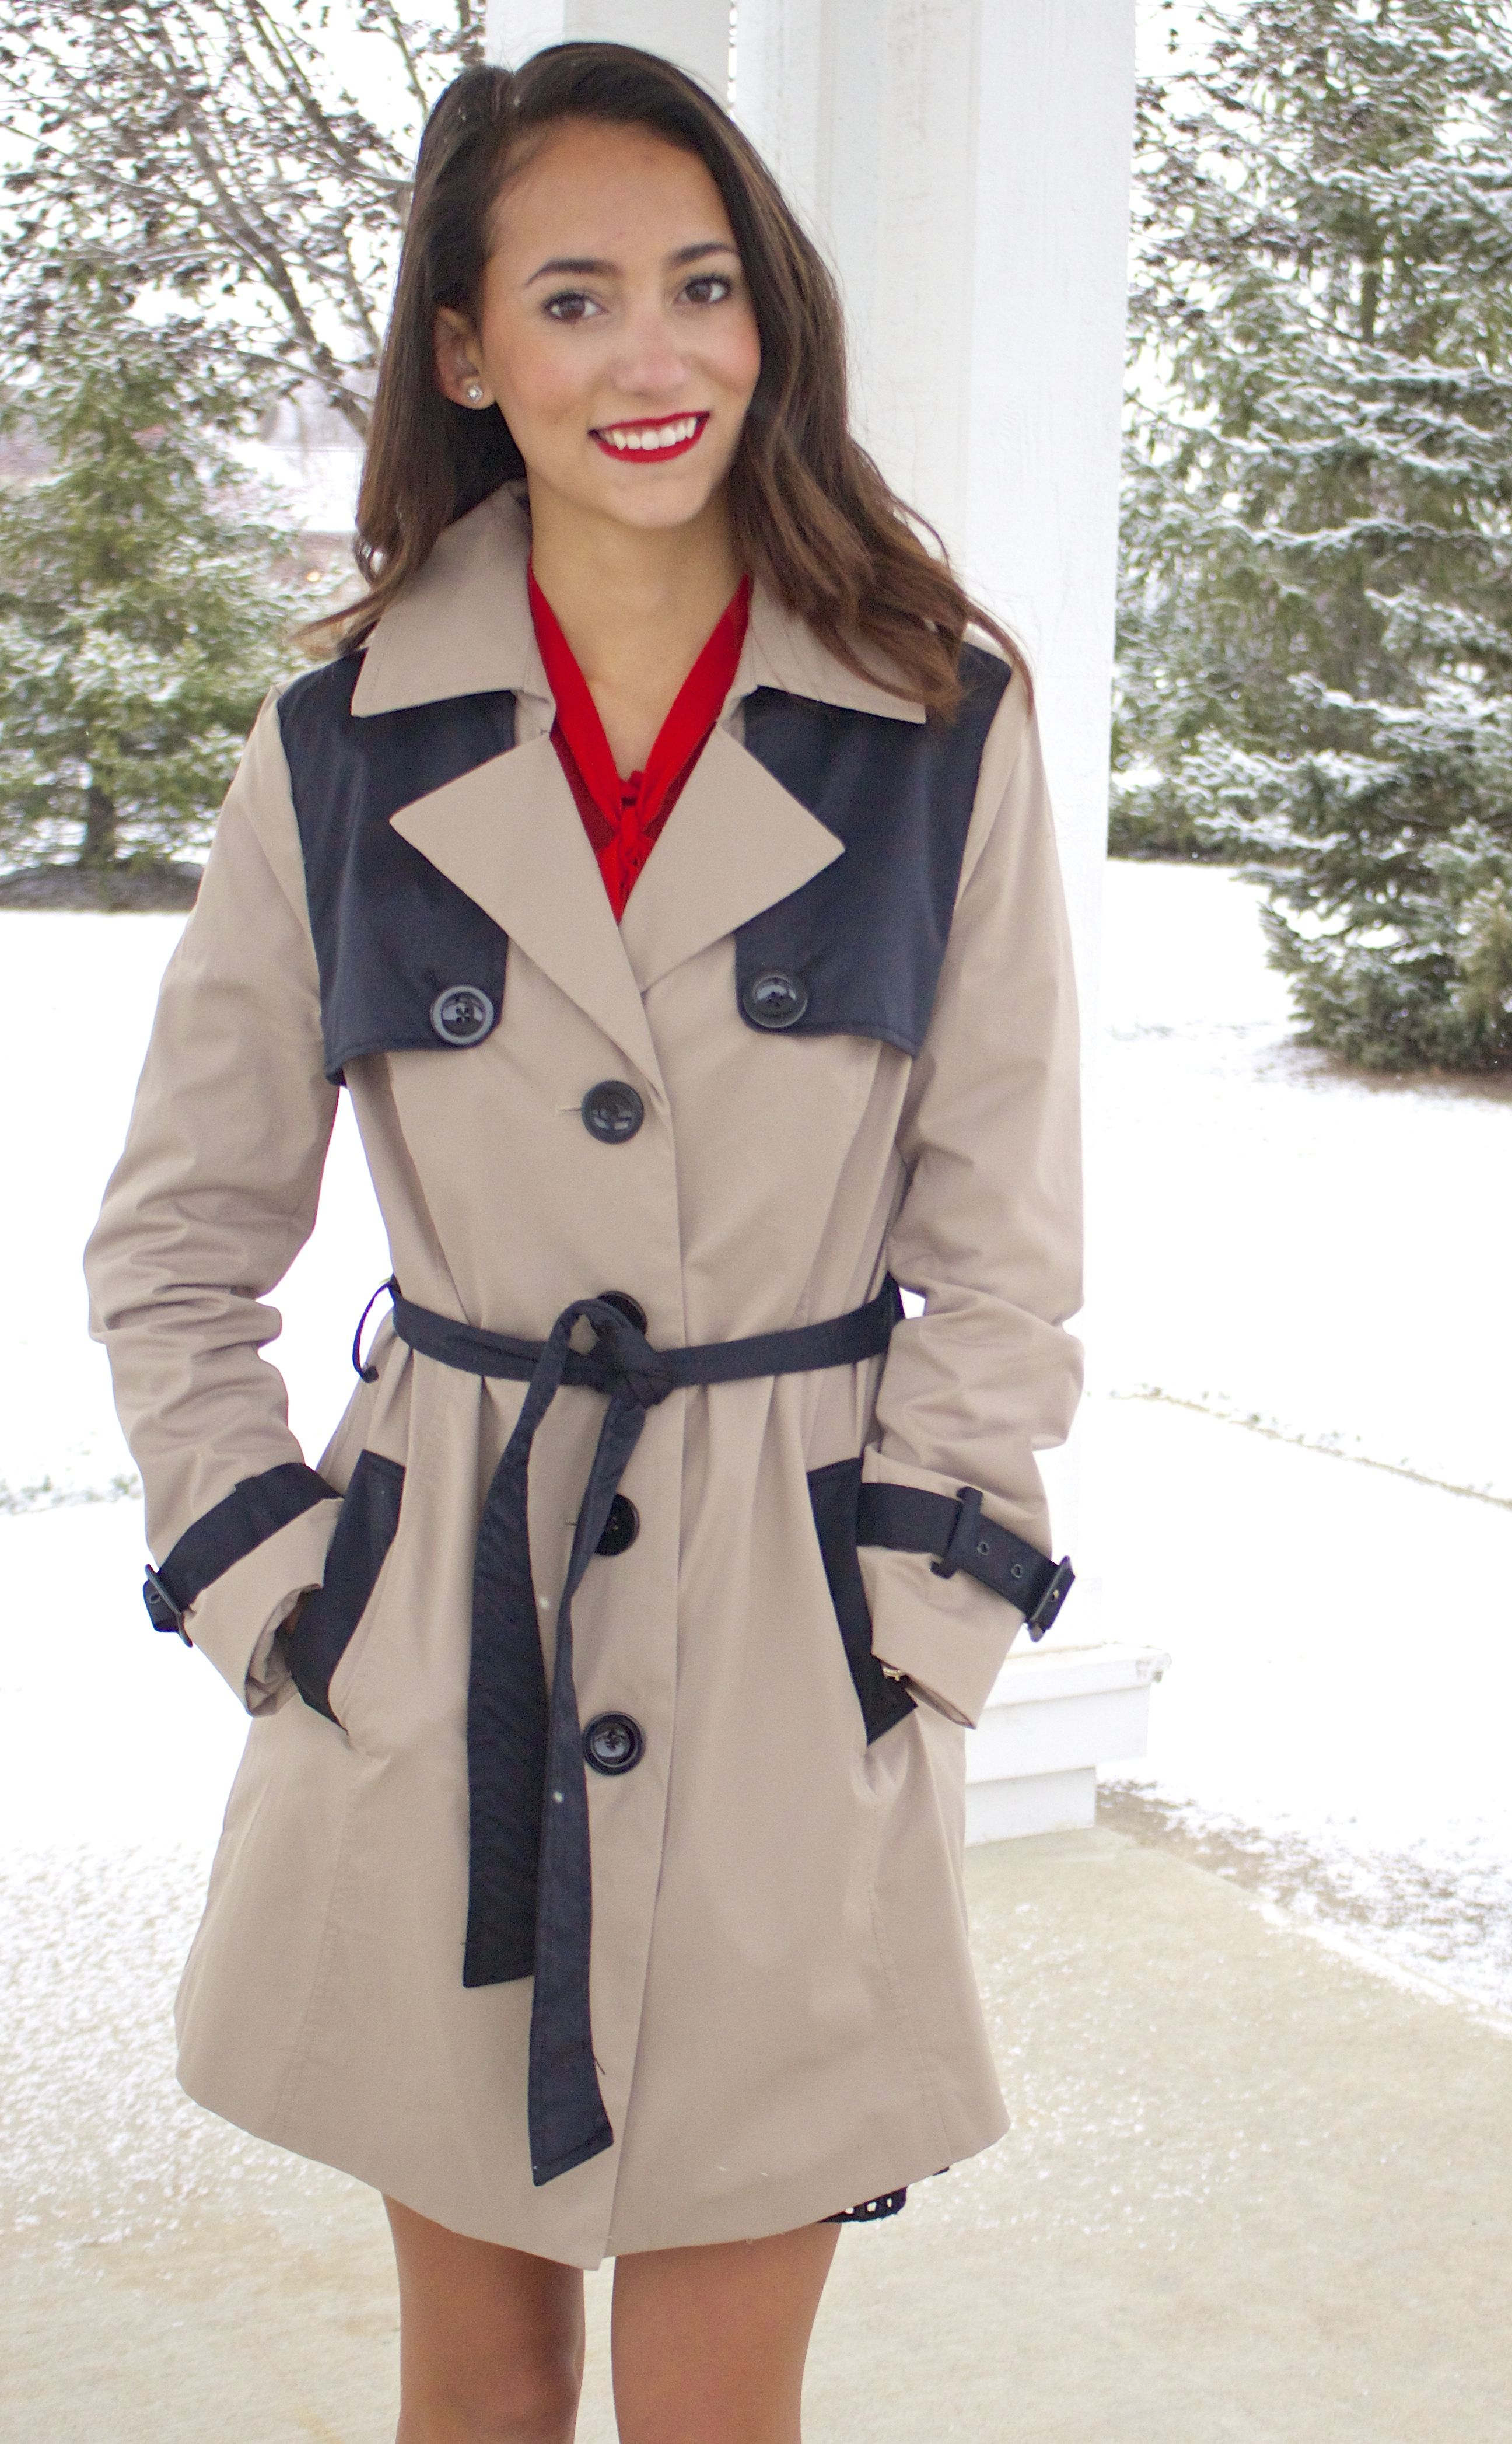 Tan and black trench coat, red bow top, christmas holiday outfit 2014